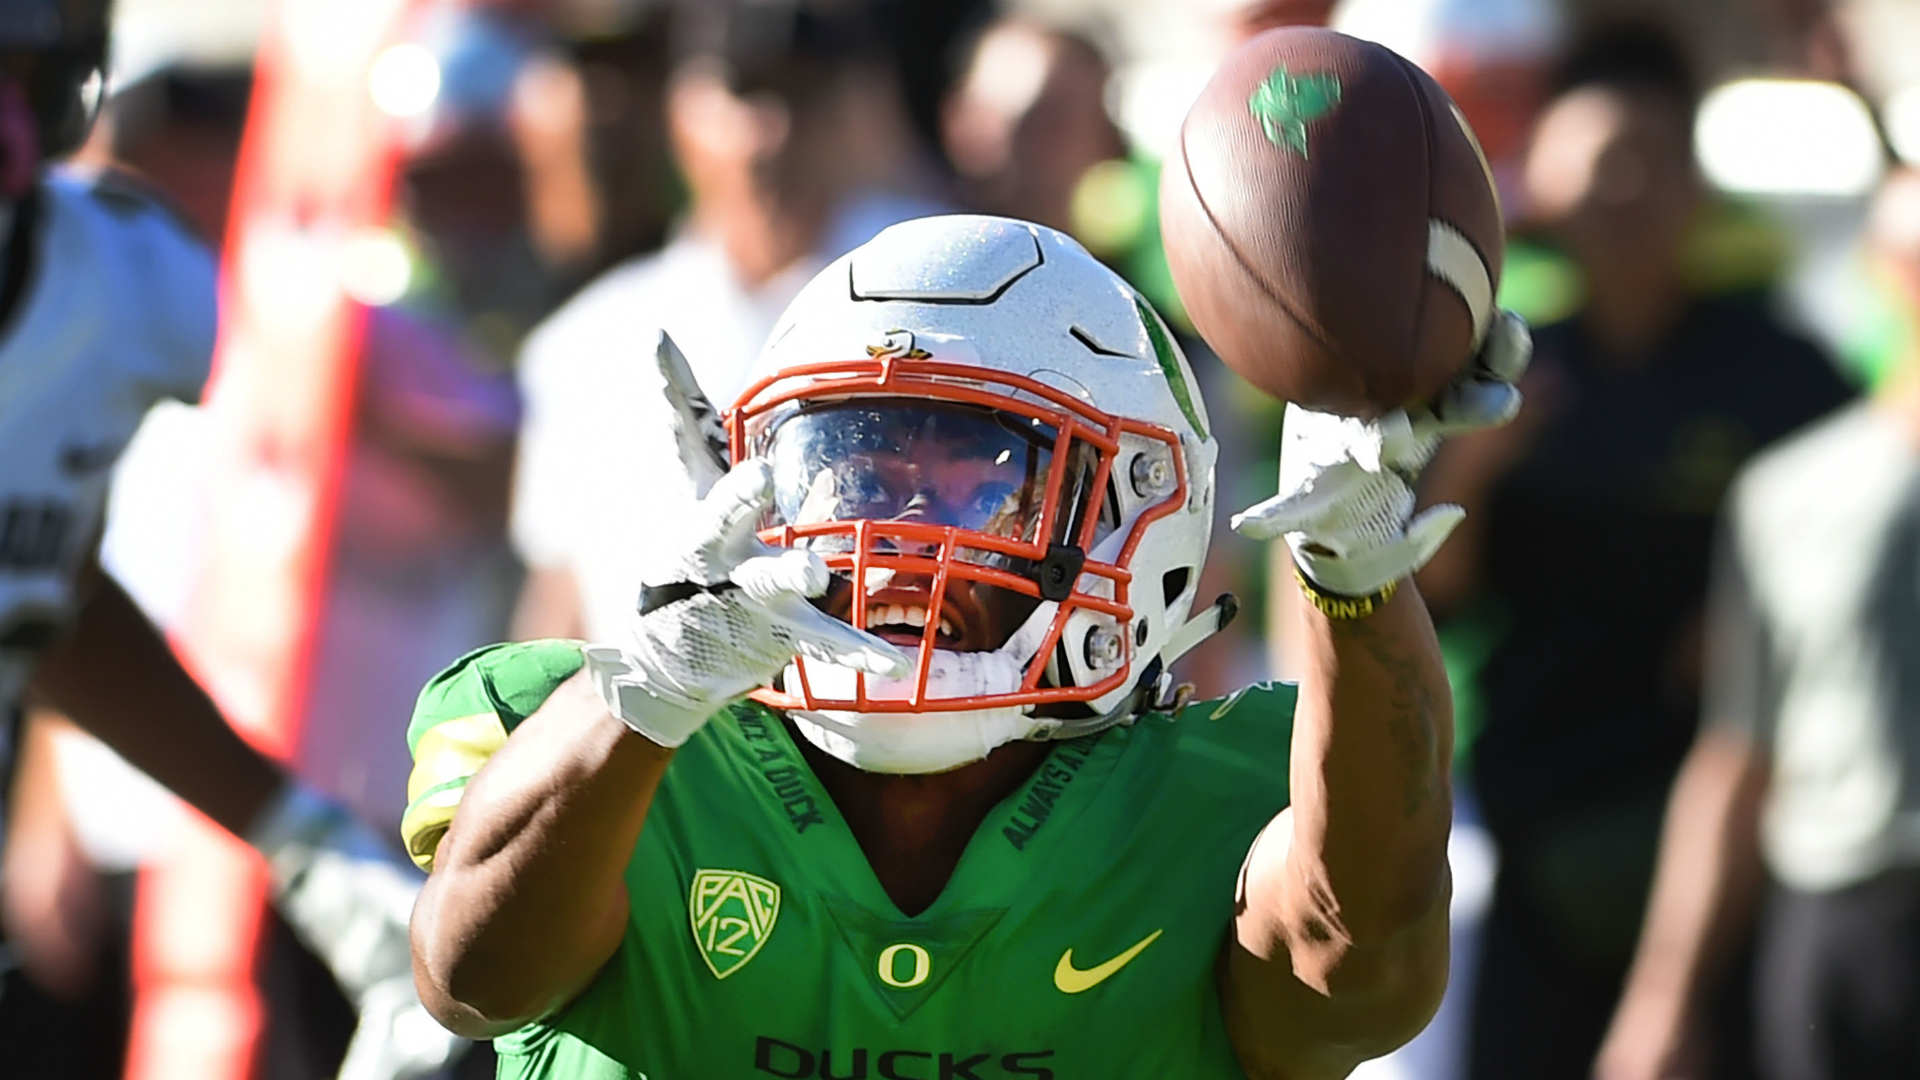 Oregon WR Carrington off team following DUI arrest